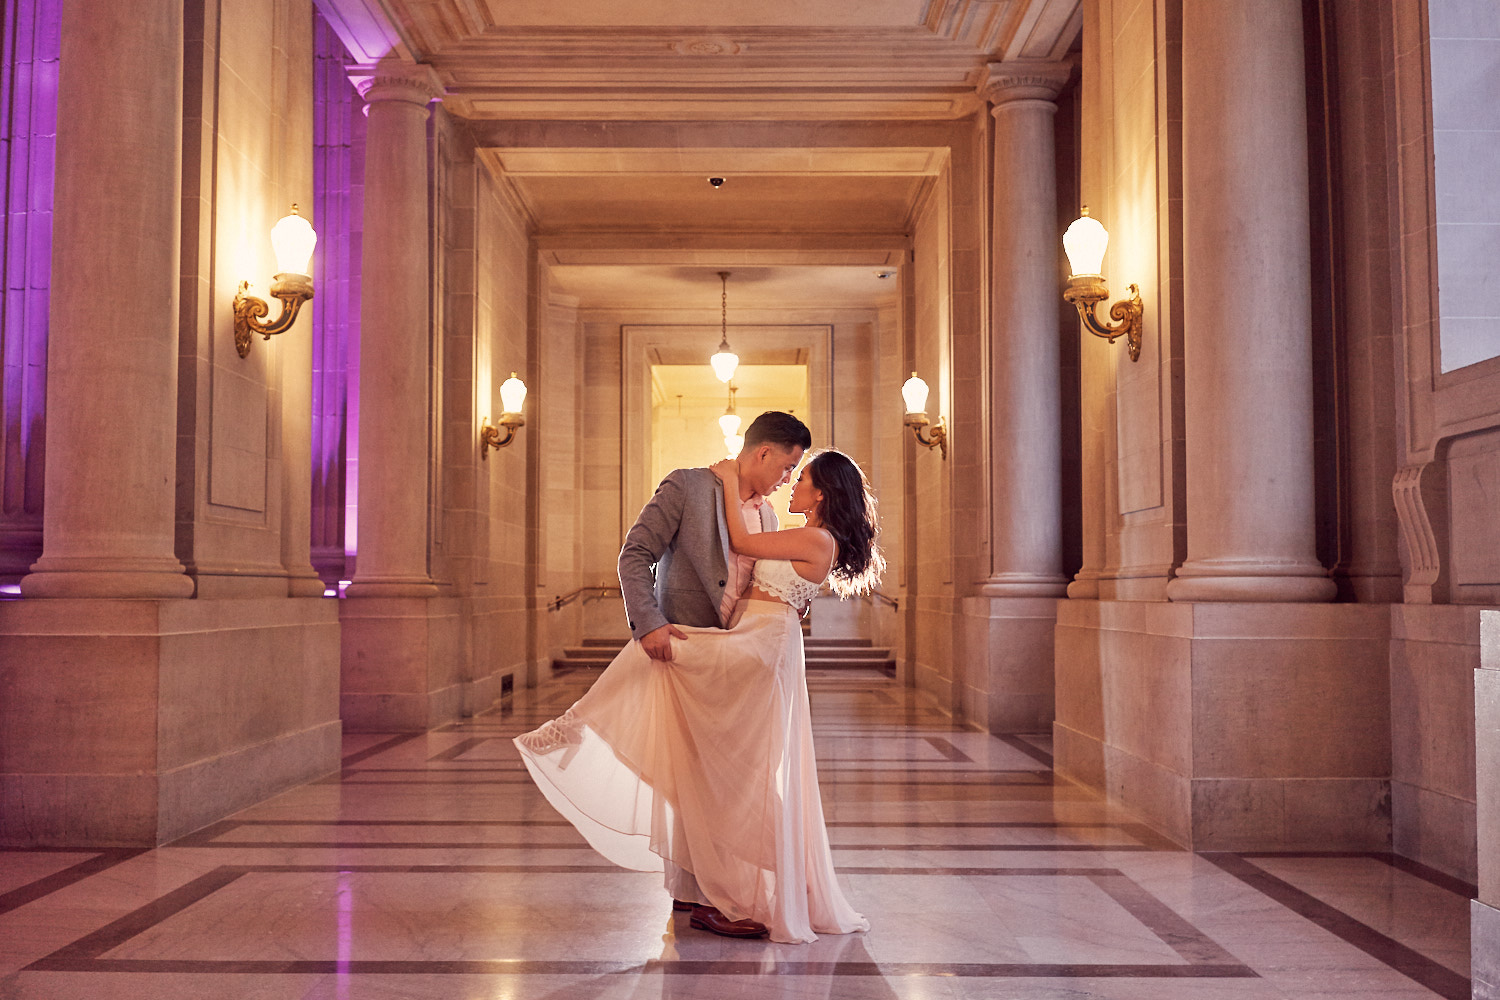 couples-dancing-photos-2-floor-sf-city-hall-by-afewgoodclicks